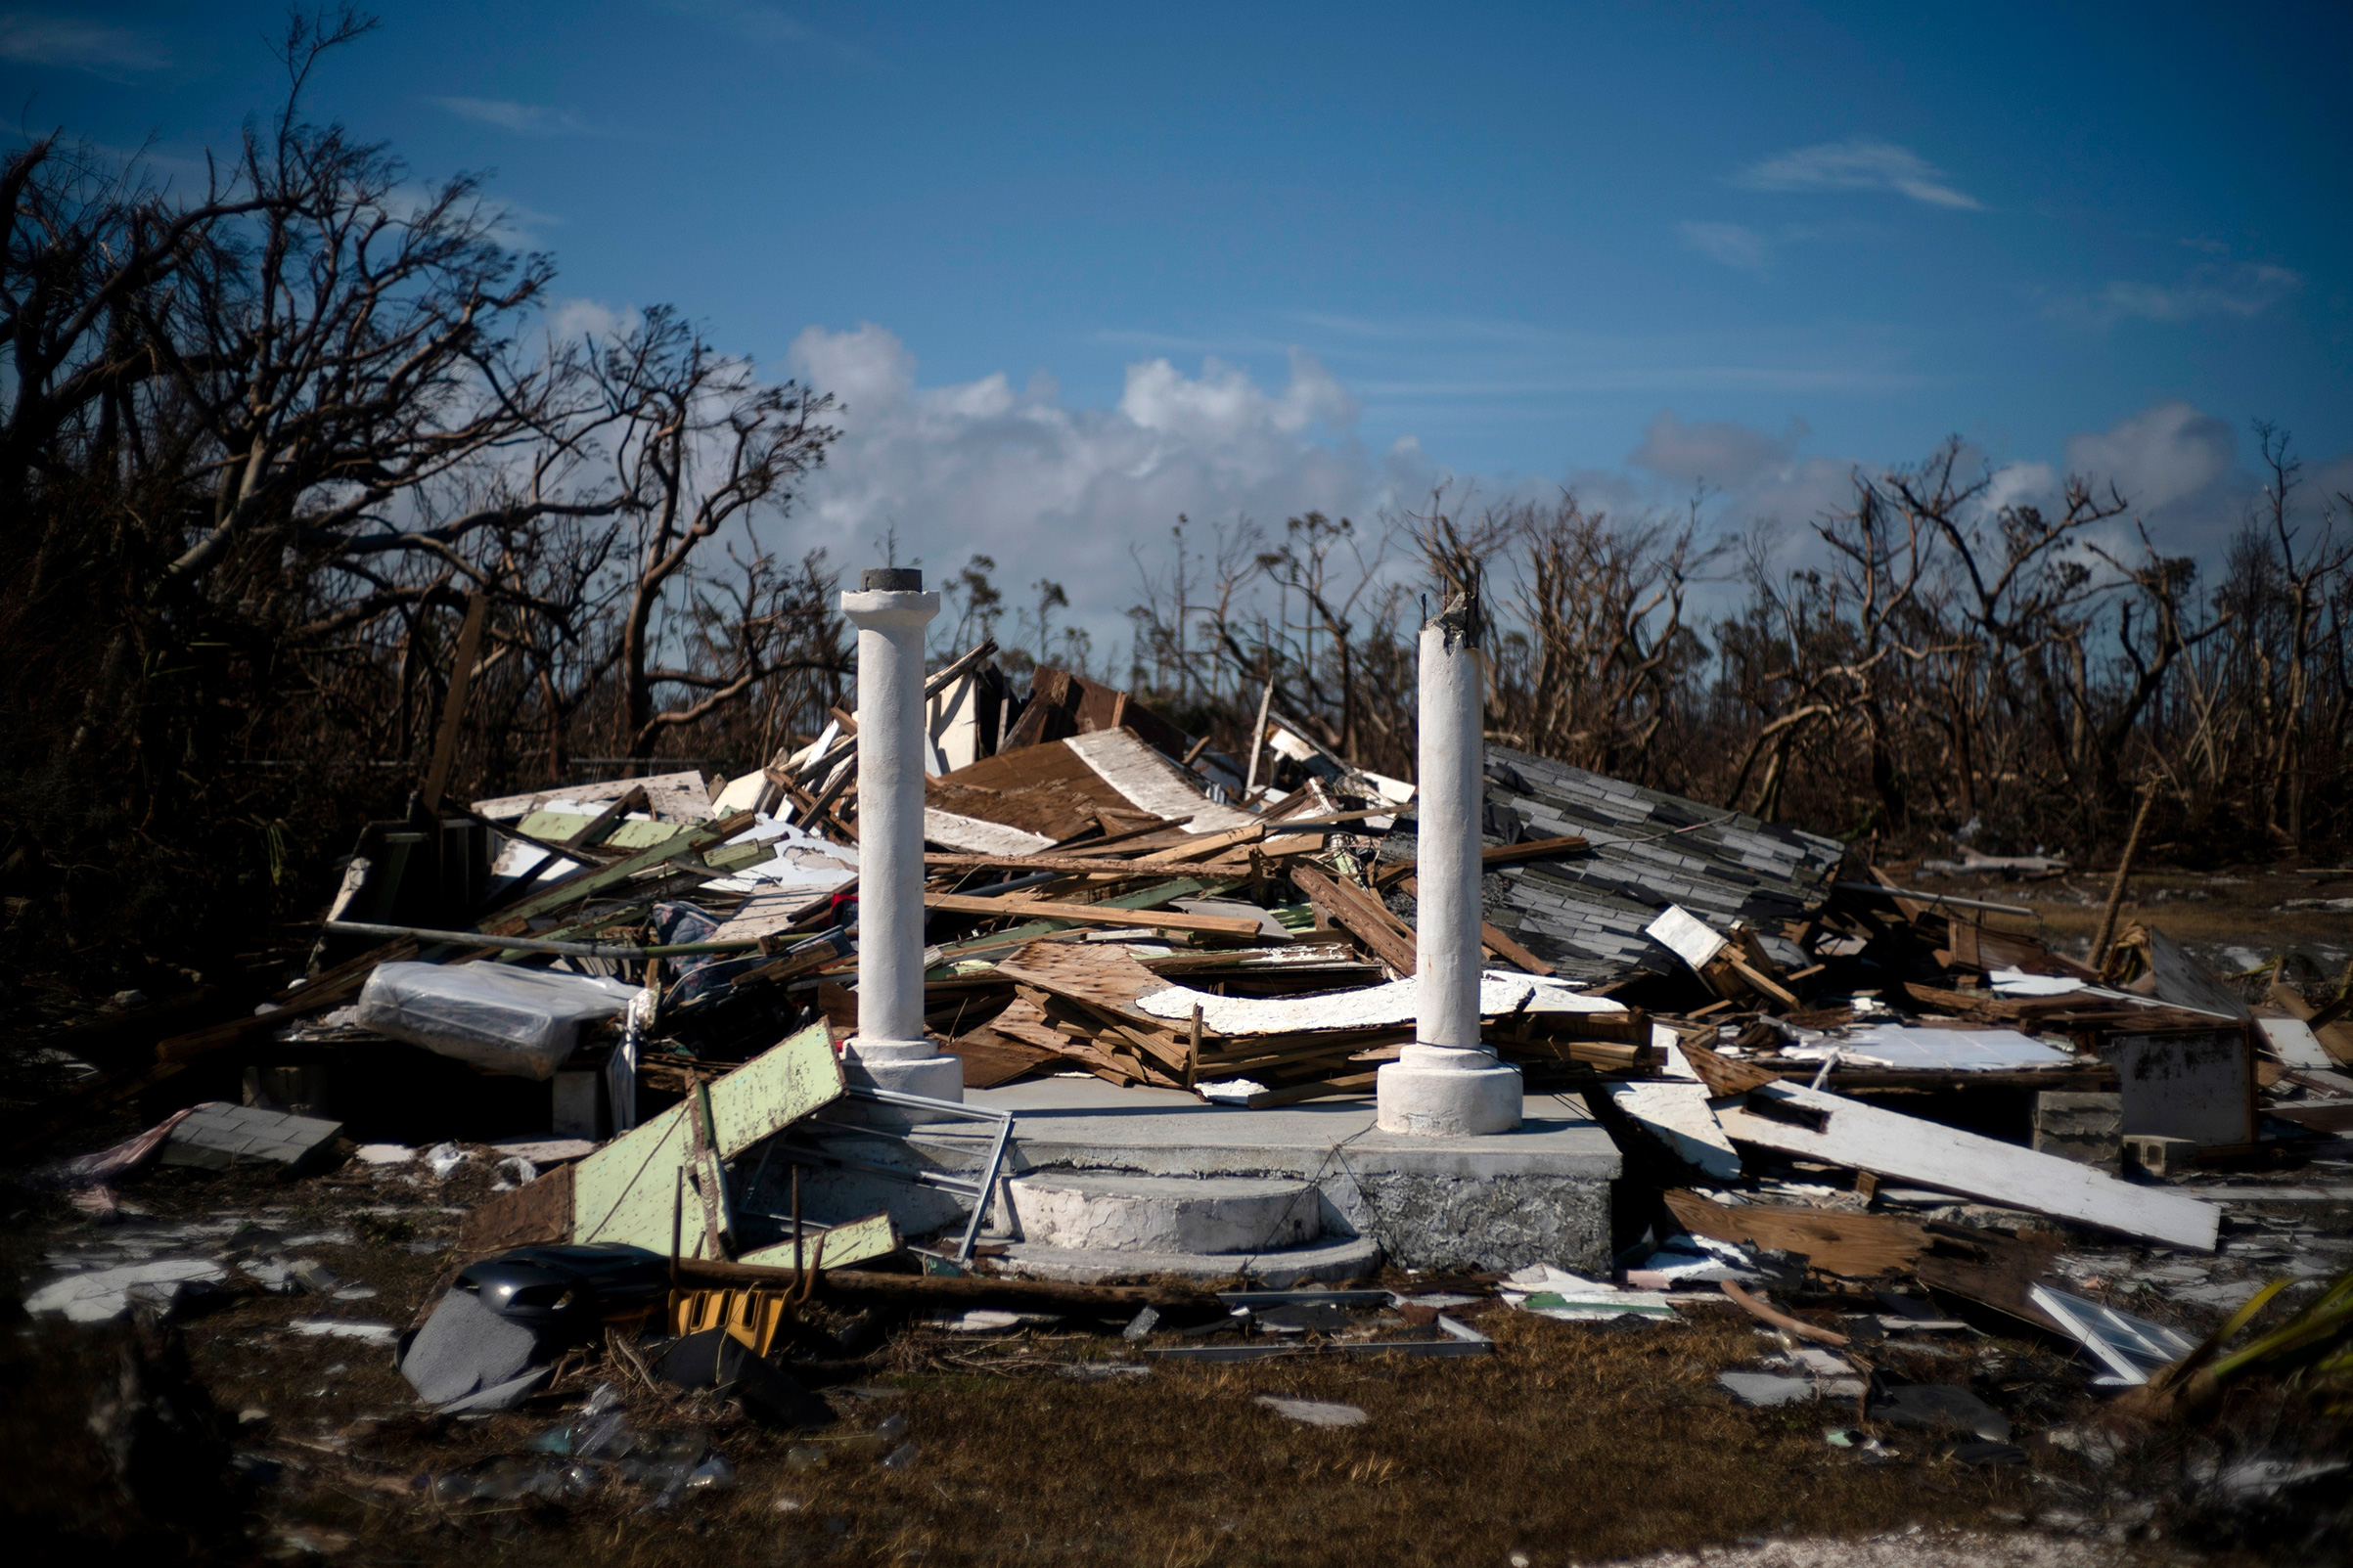 The portico of a house destroyed by Hurricane Dorian is the only thing that remains of the structure, destroyed by Hurricane Dorian, in High Rock, Grand Bahama, Bahamas, Sept. 5, 2019.